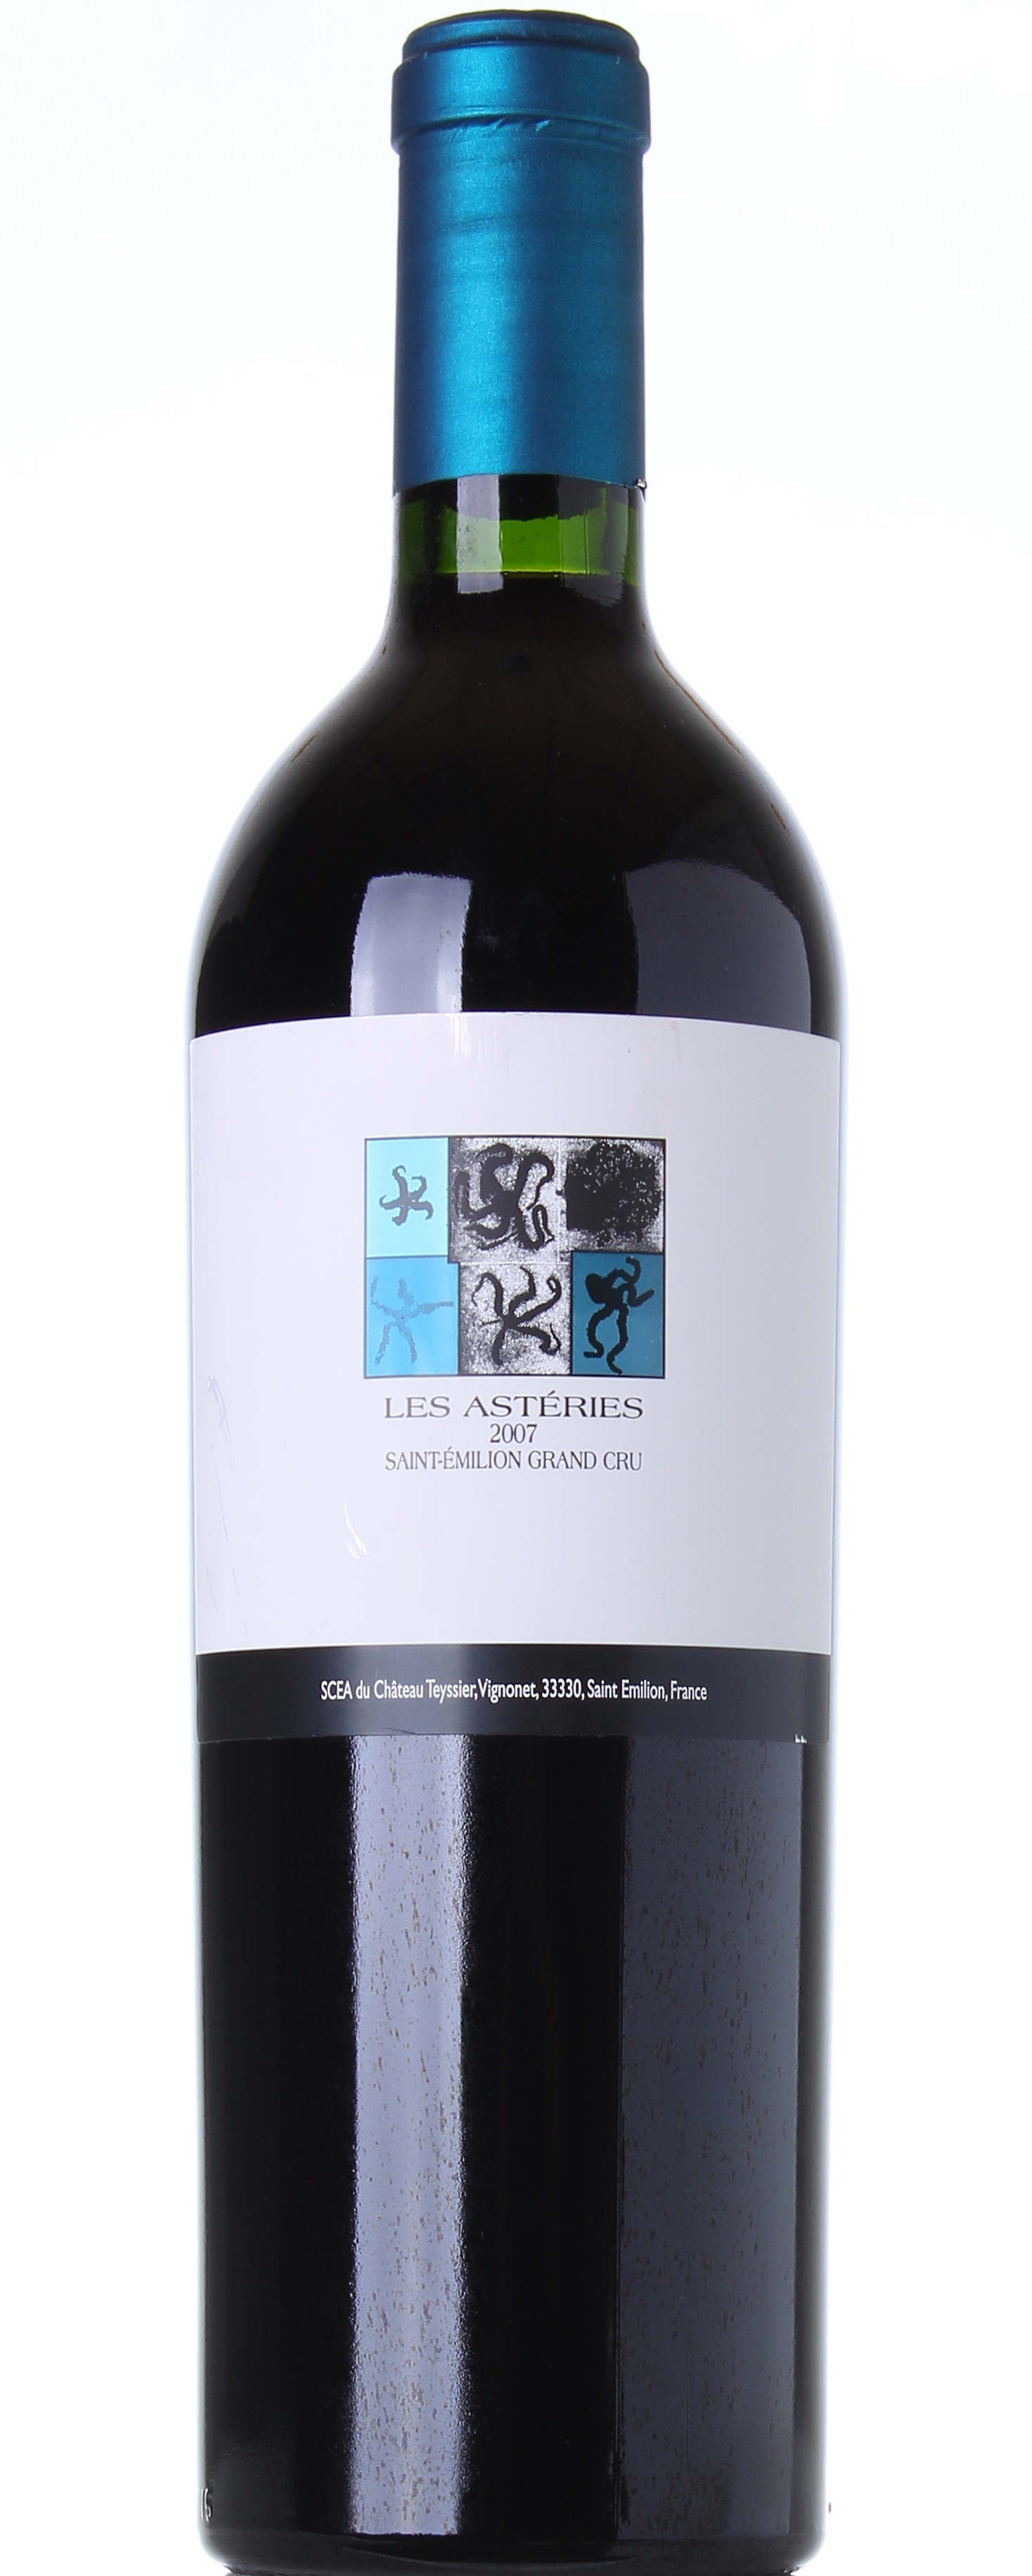 CHATEAU TEYSSIER LES ASTERIES 2007